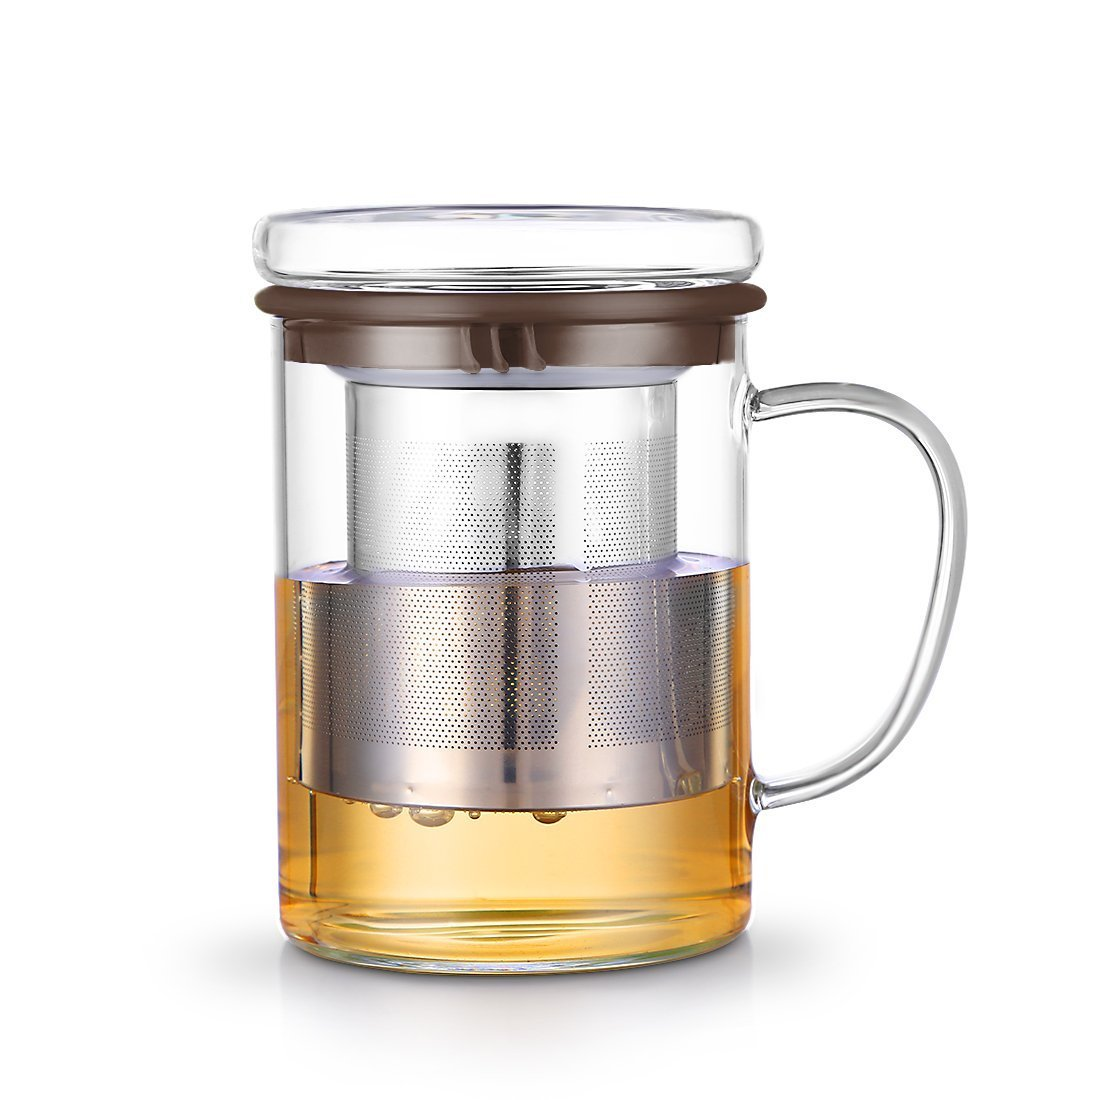 JIAQI 13.6 Ounces Glass Tea Mug With Lid and Stainless Steel Infuser, Borosilicate Glass Tea Cup, 3 Colours Available (Coffee)